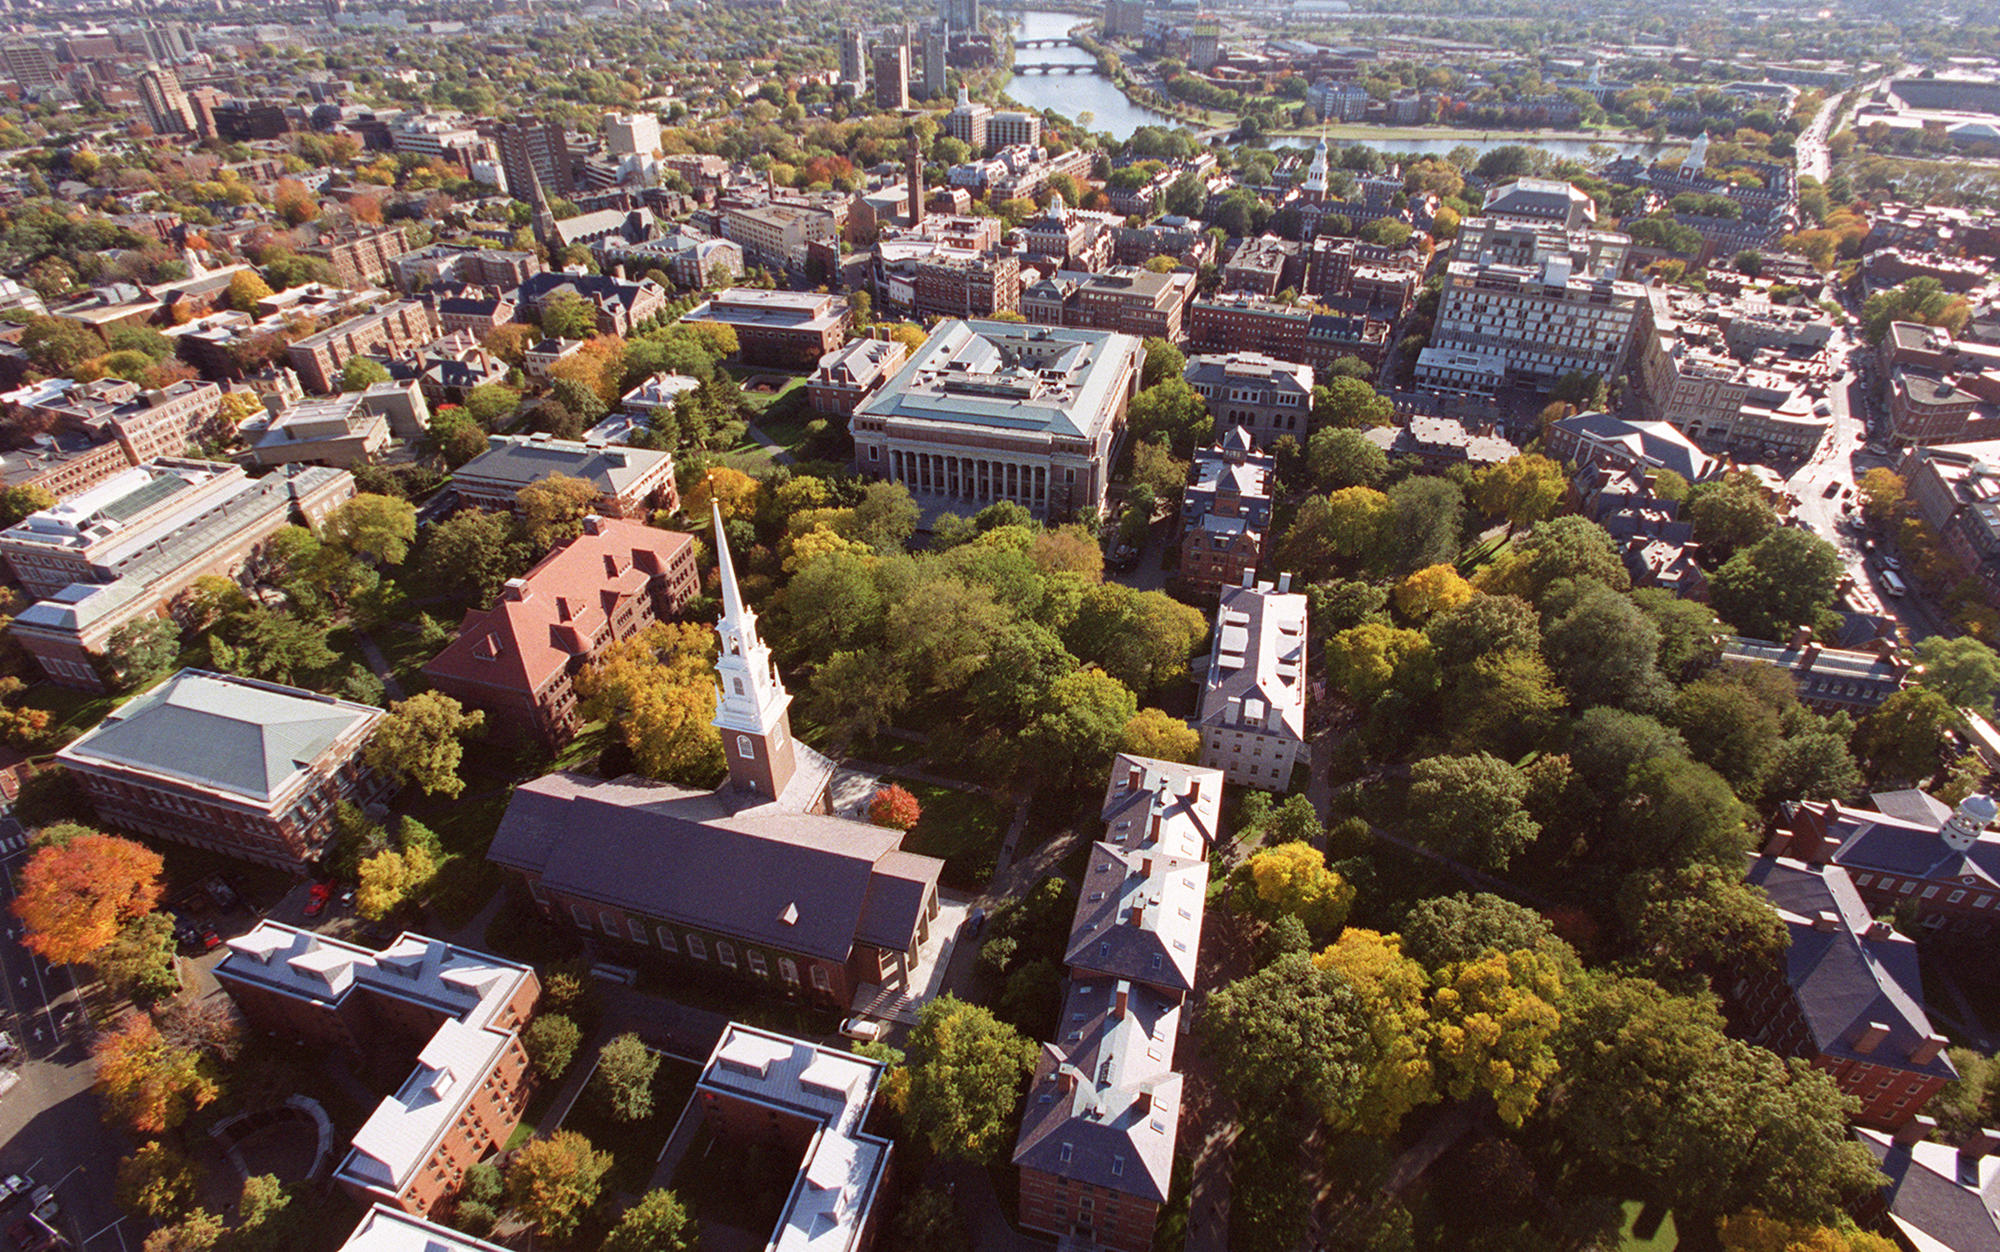 Aerial of Harvard landscape